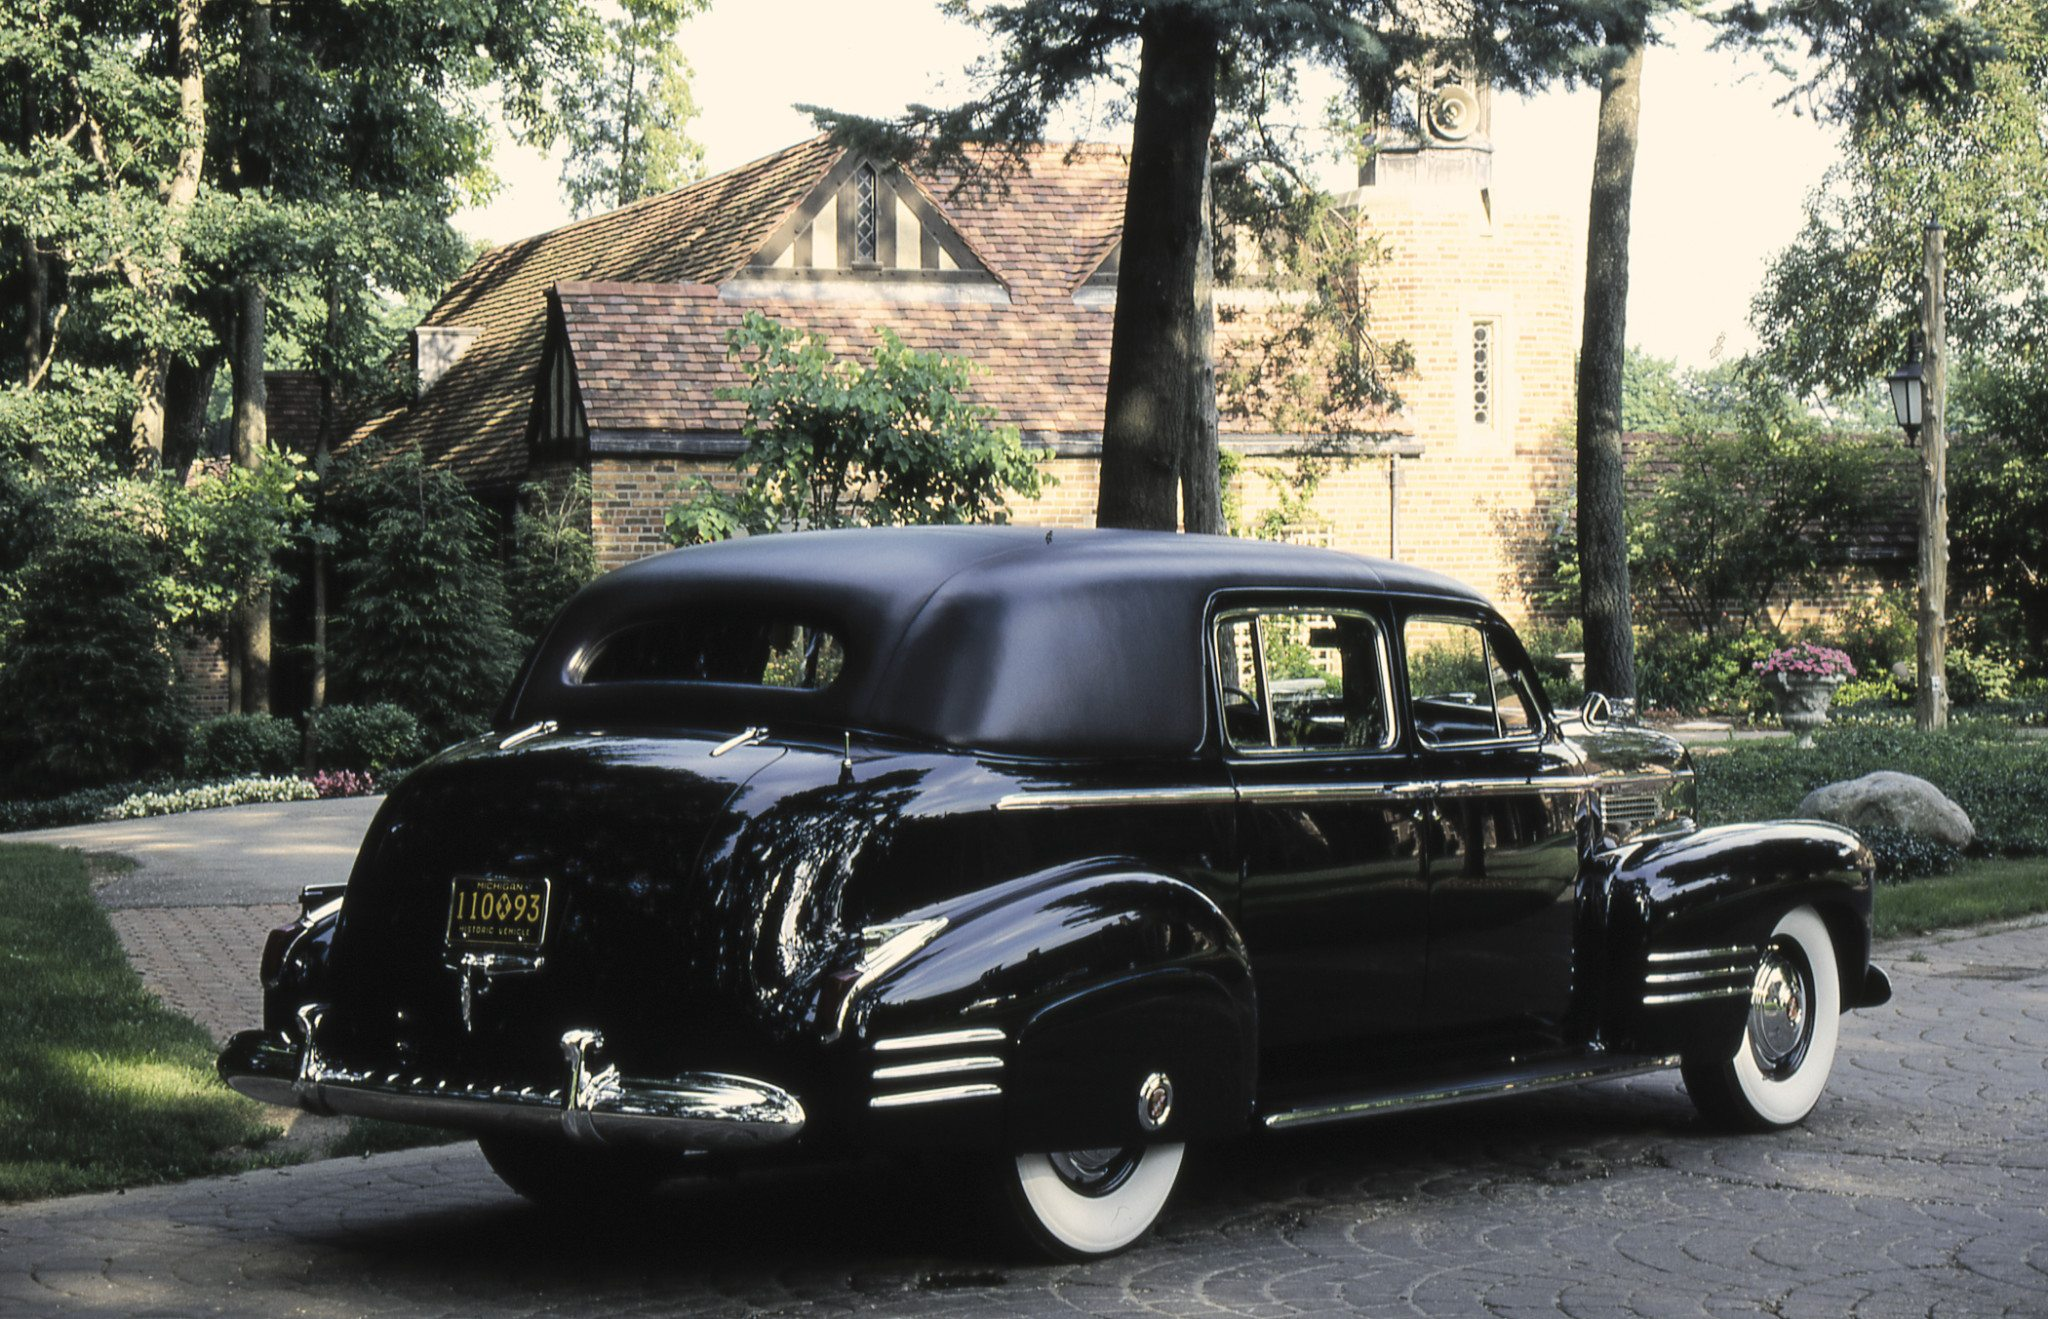 1941 Cadillac Fleetwood Series 75 Limousine model 33F Rear View